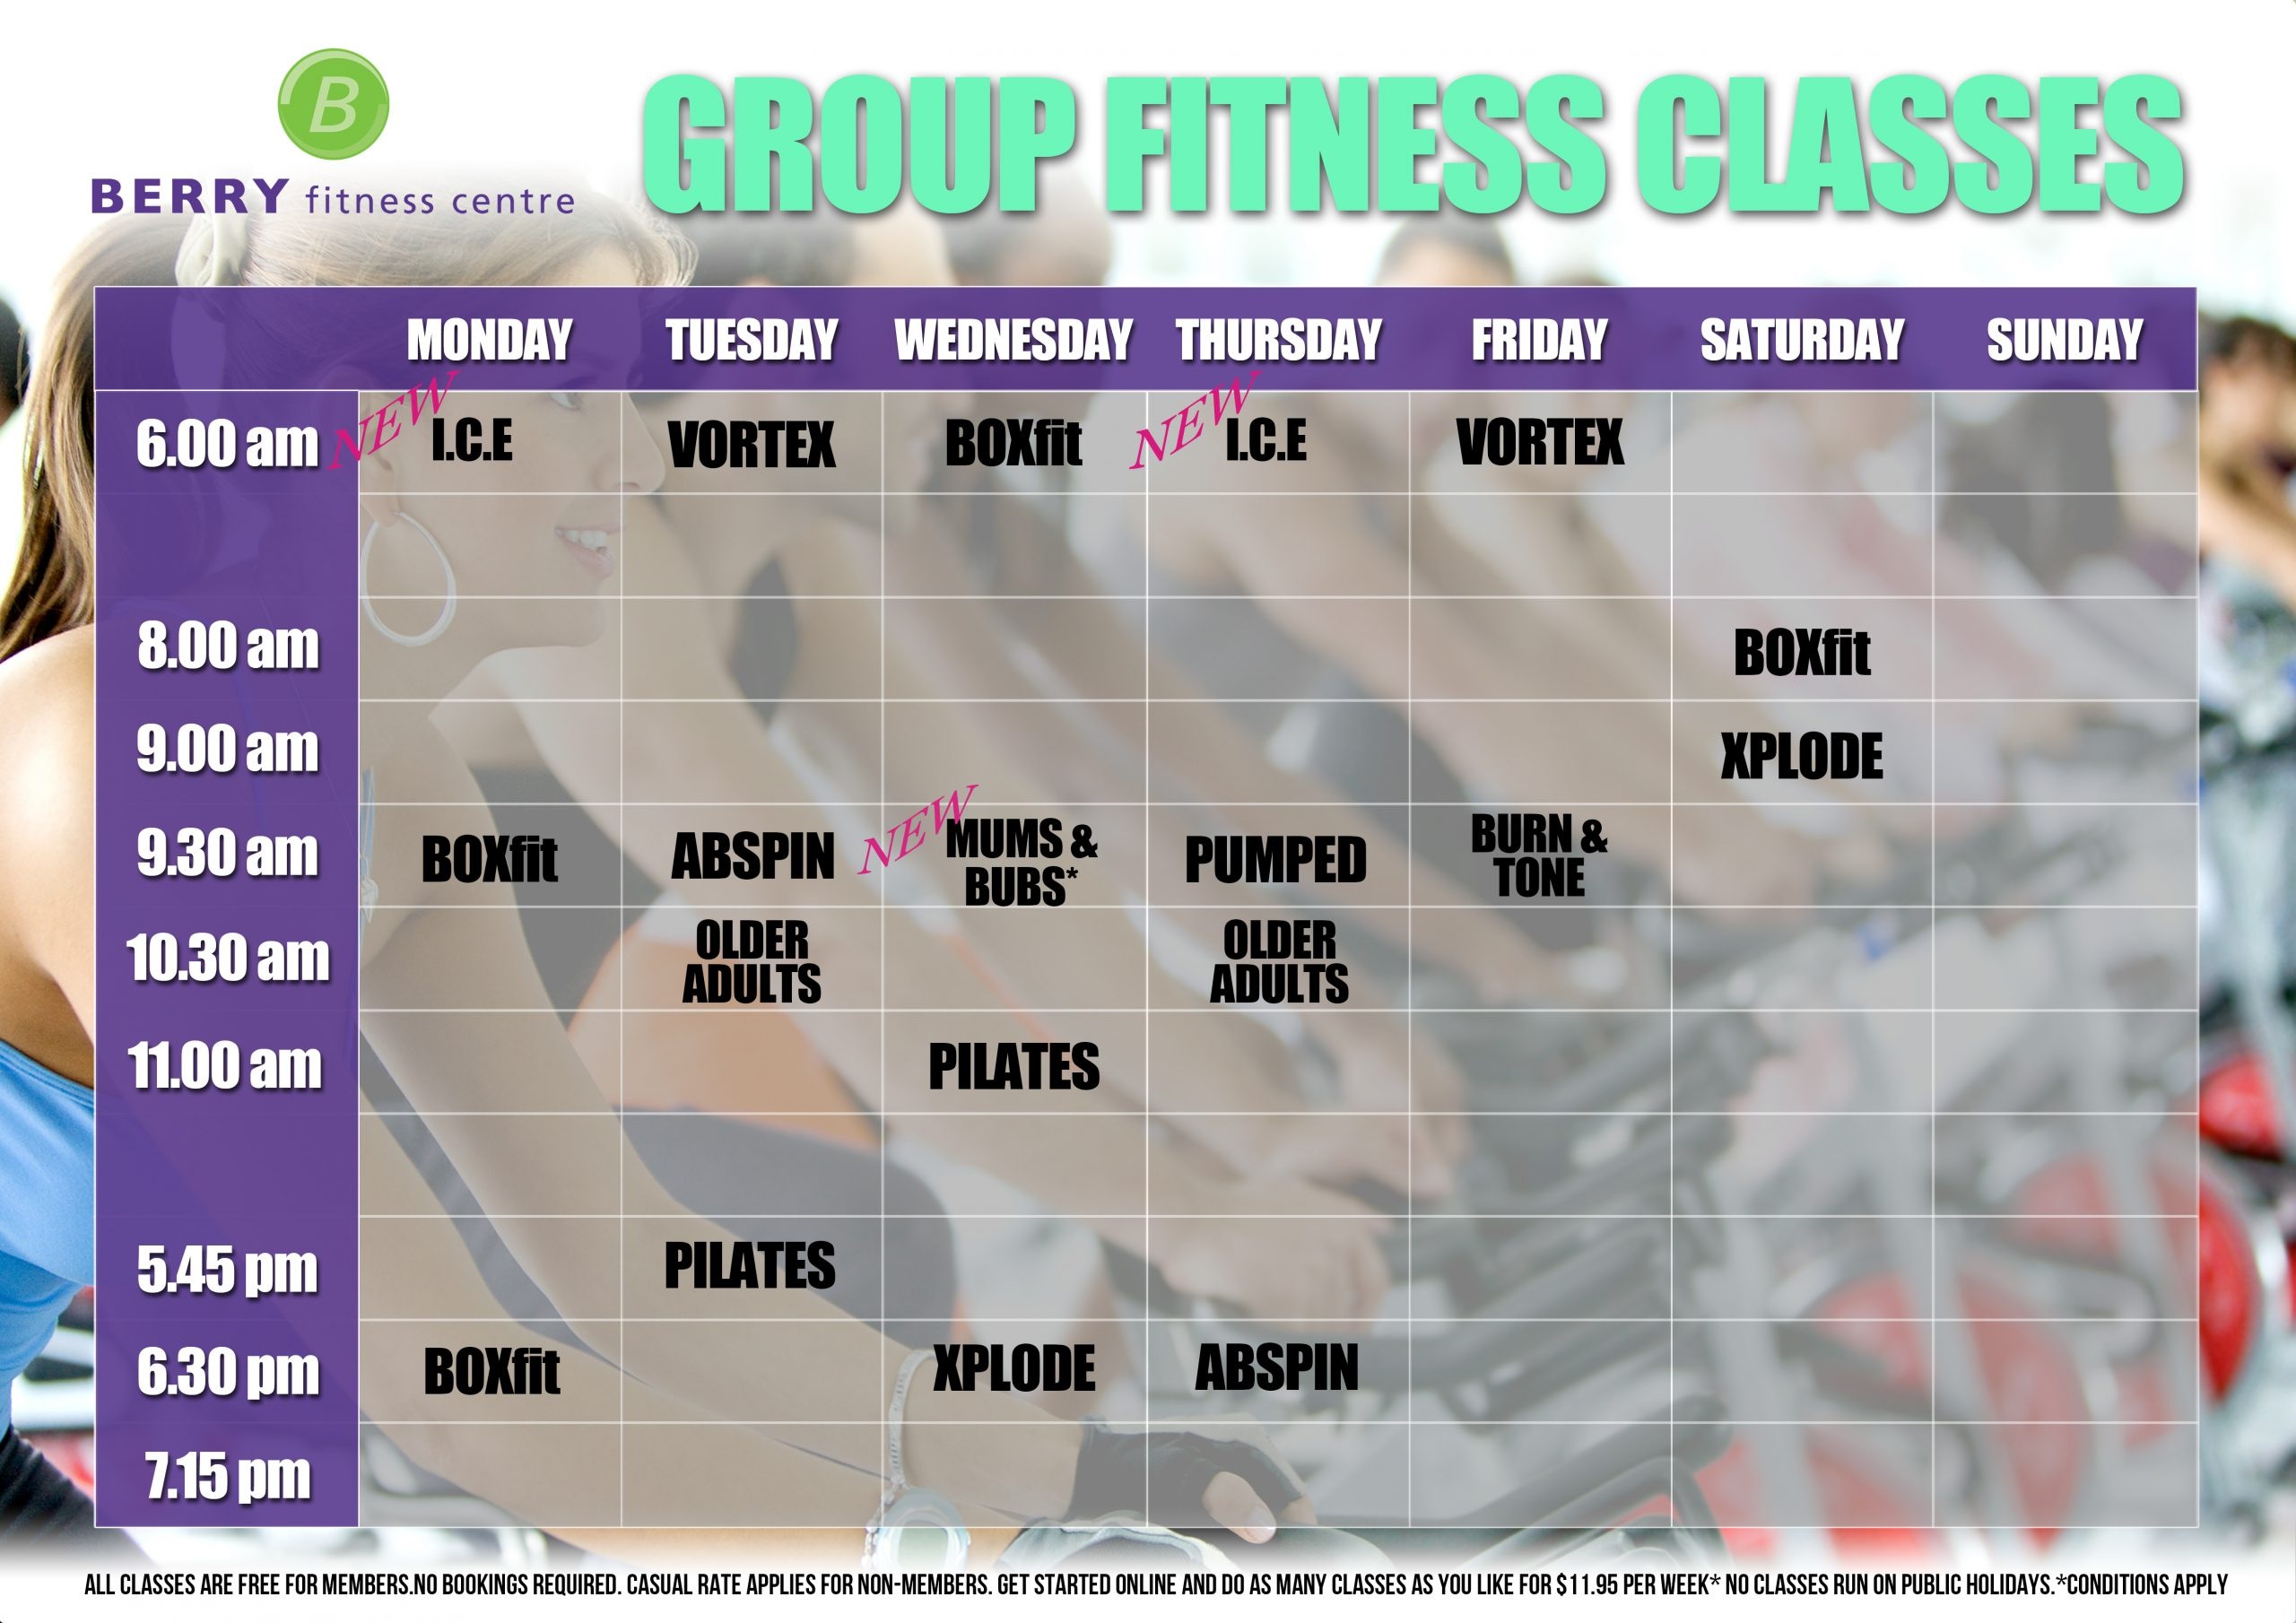 Our secrets out! New timetable release!